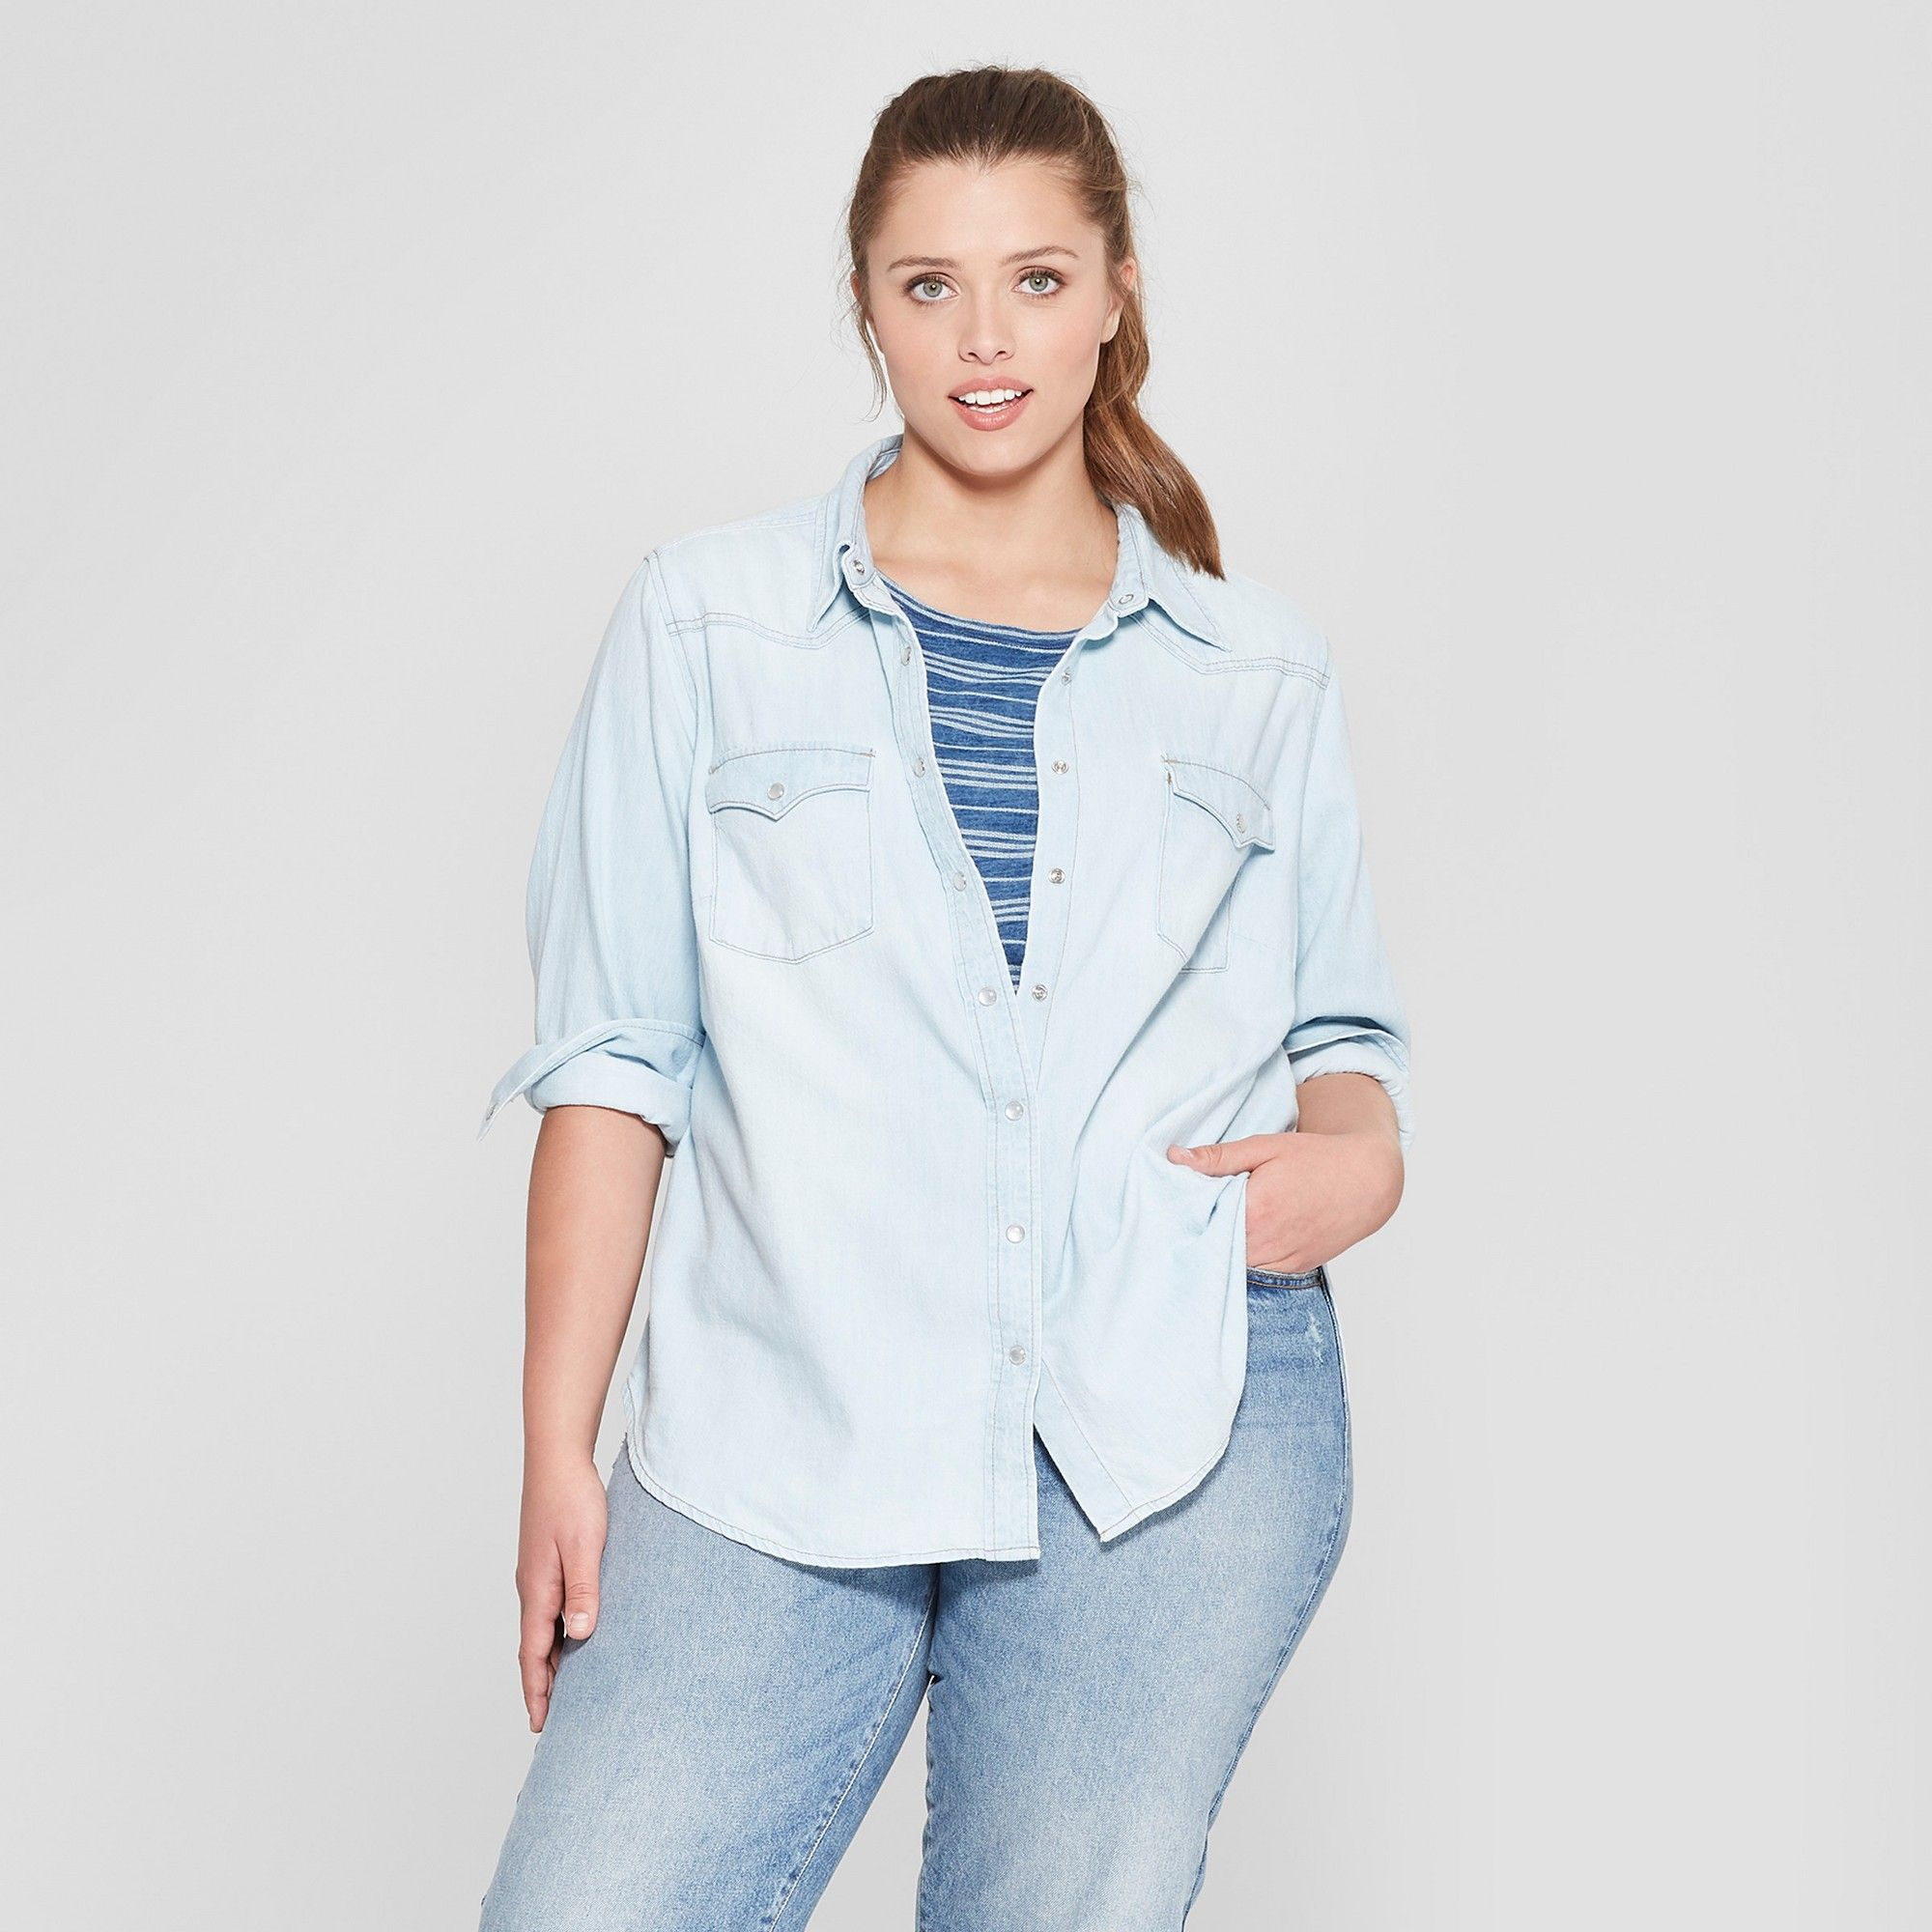 f9e39960c63 Women s Plus Size Long Sleeve Labette Denim Shirt - Universal Thread Light  Wash 3X